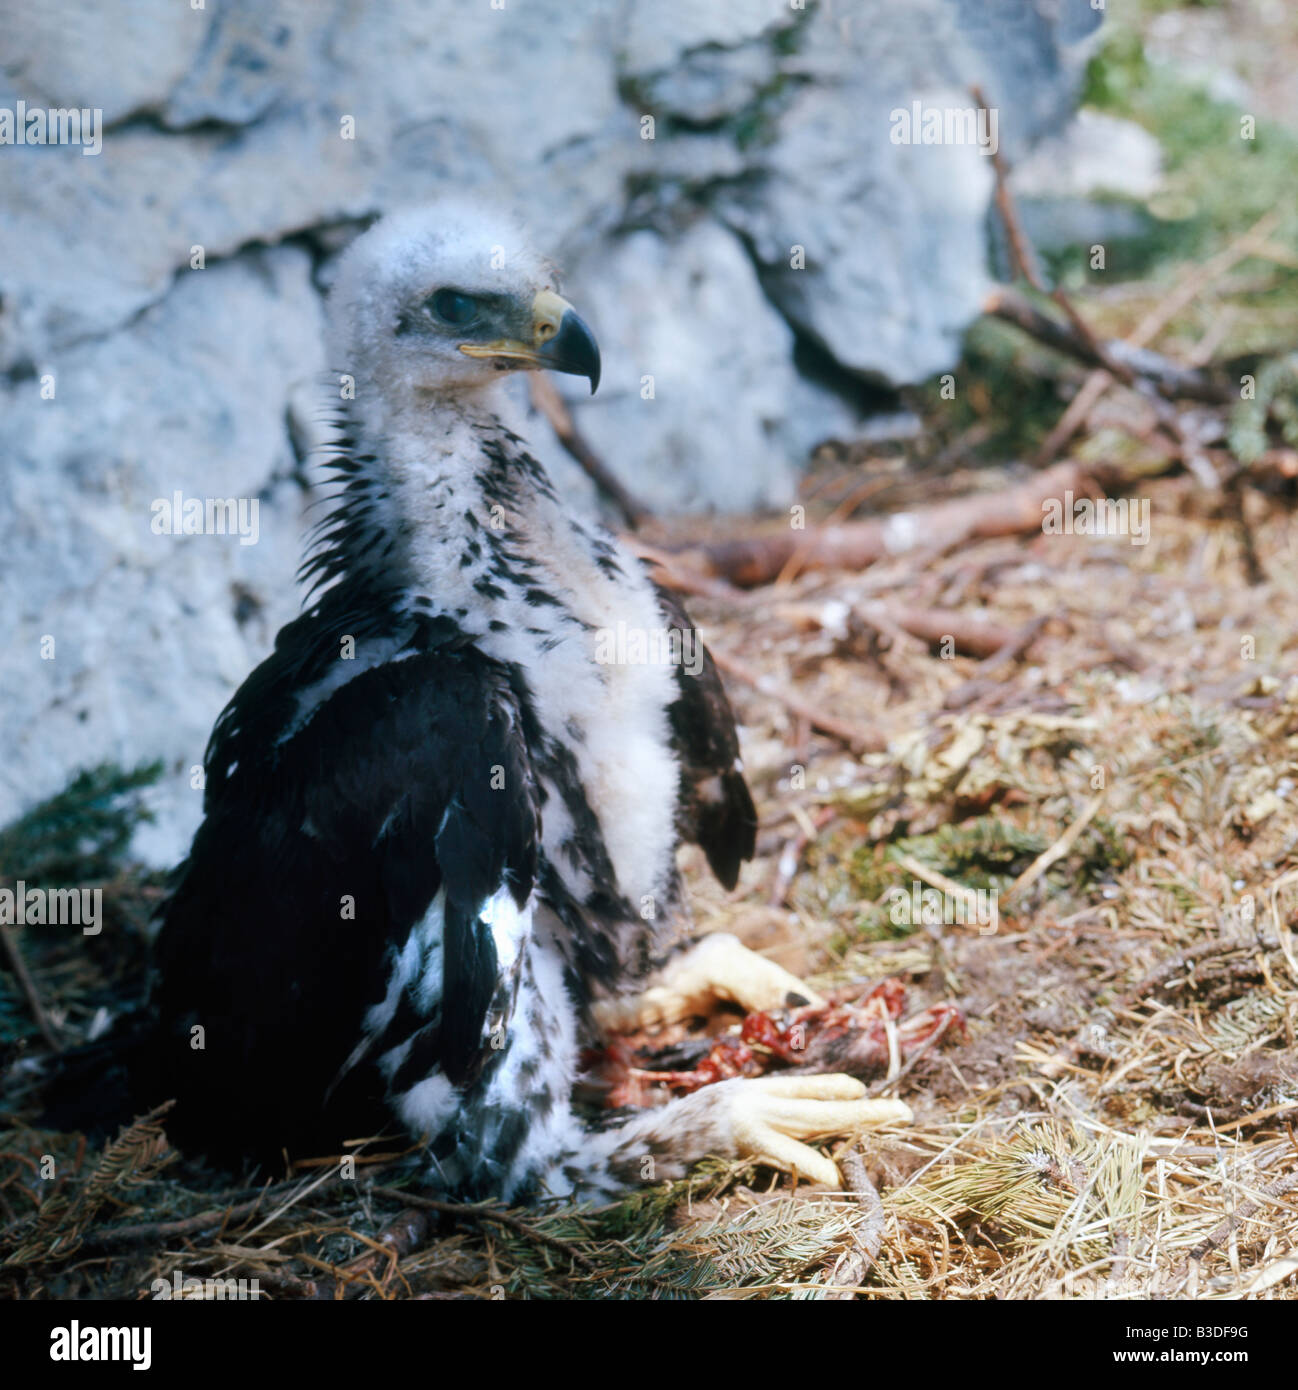 olden Eagle Aquila chrysaetos twoo months old eagle on nest site with carcass voralberg Austria Accipitridae Adler - Stock Image